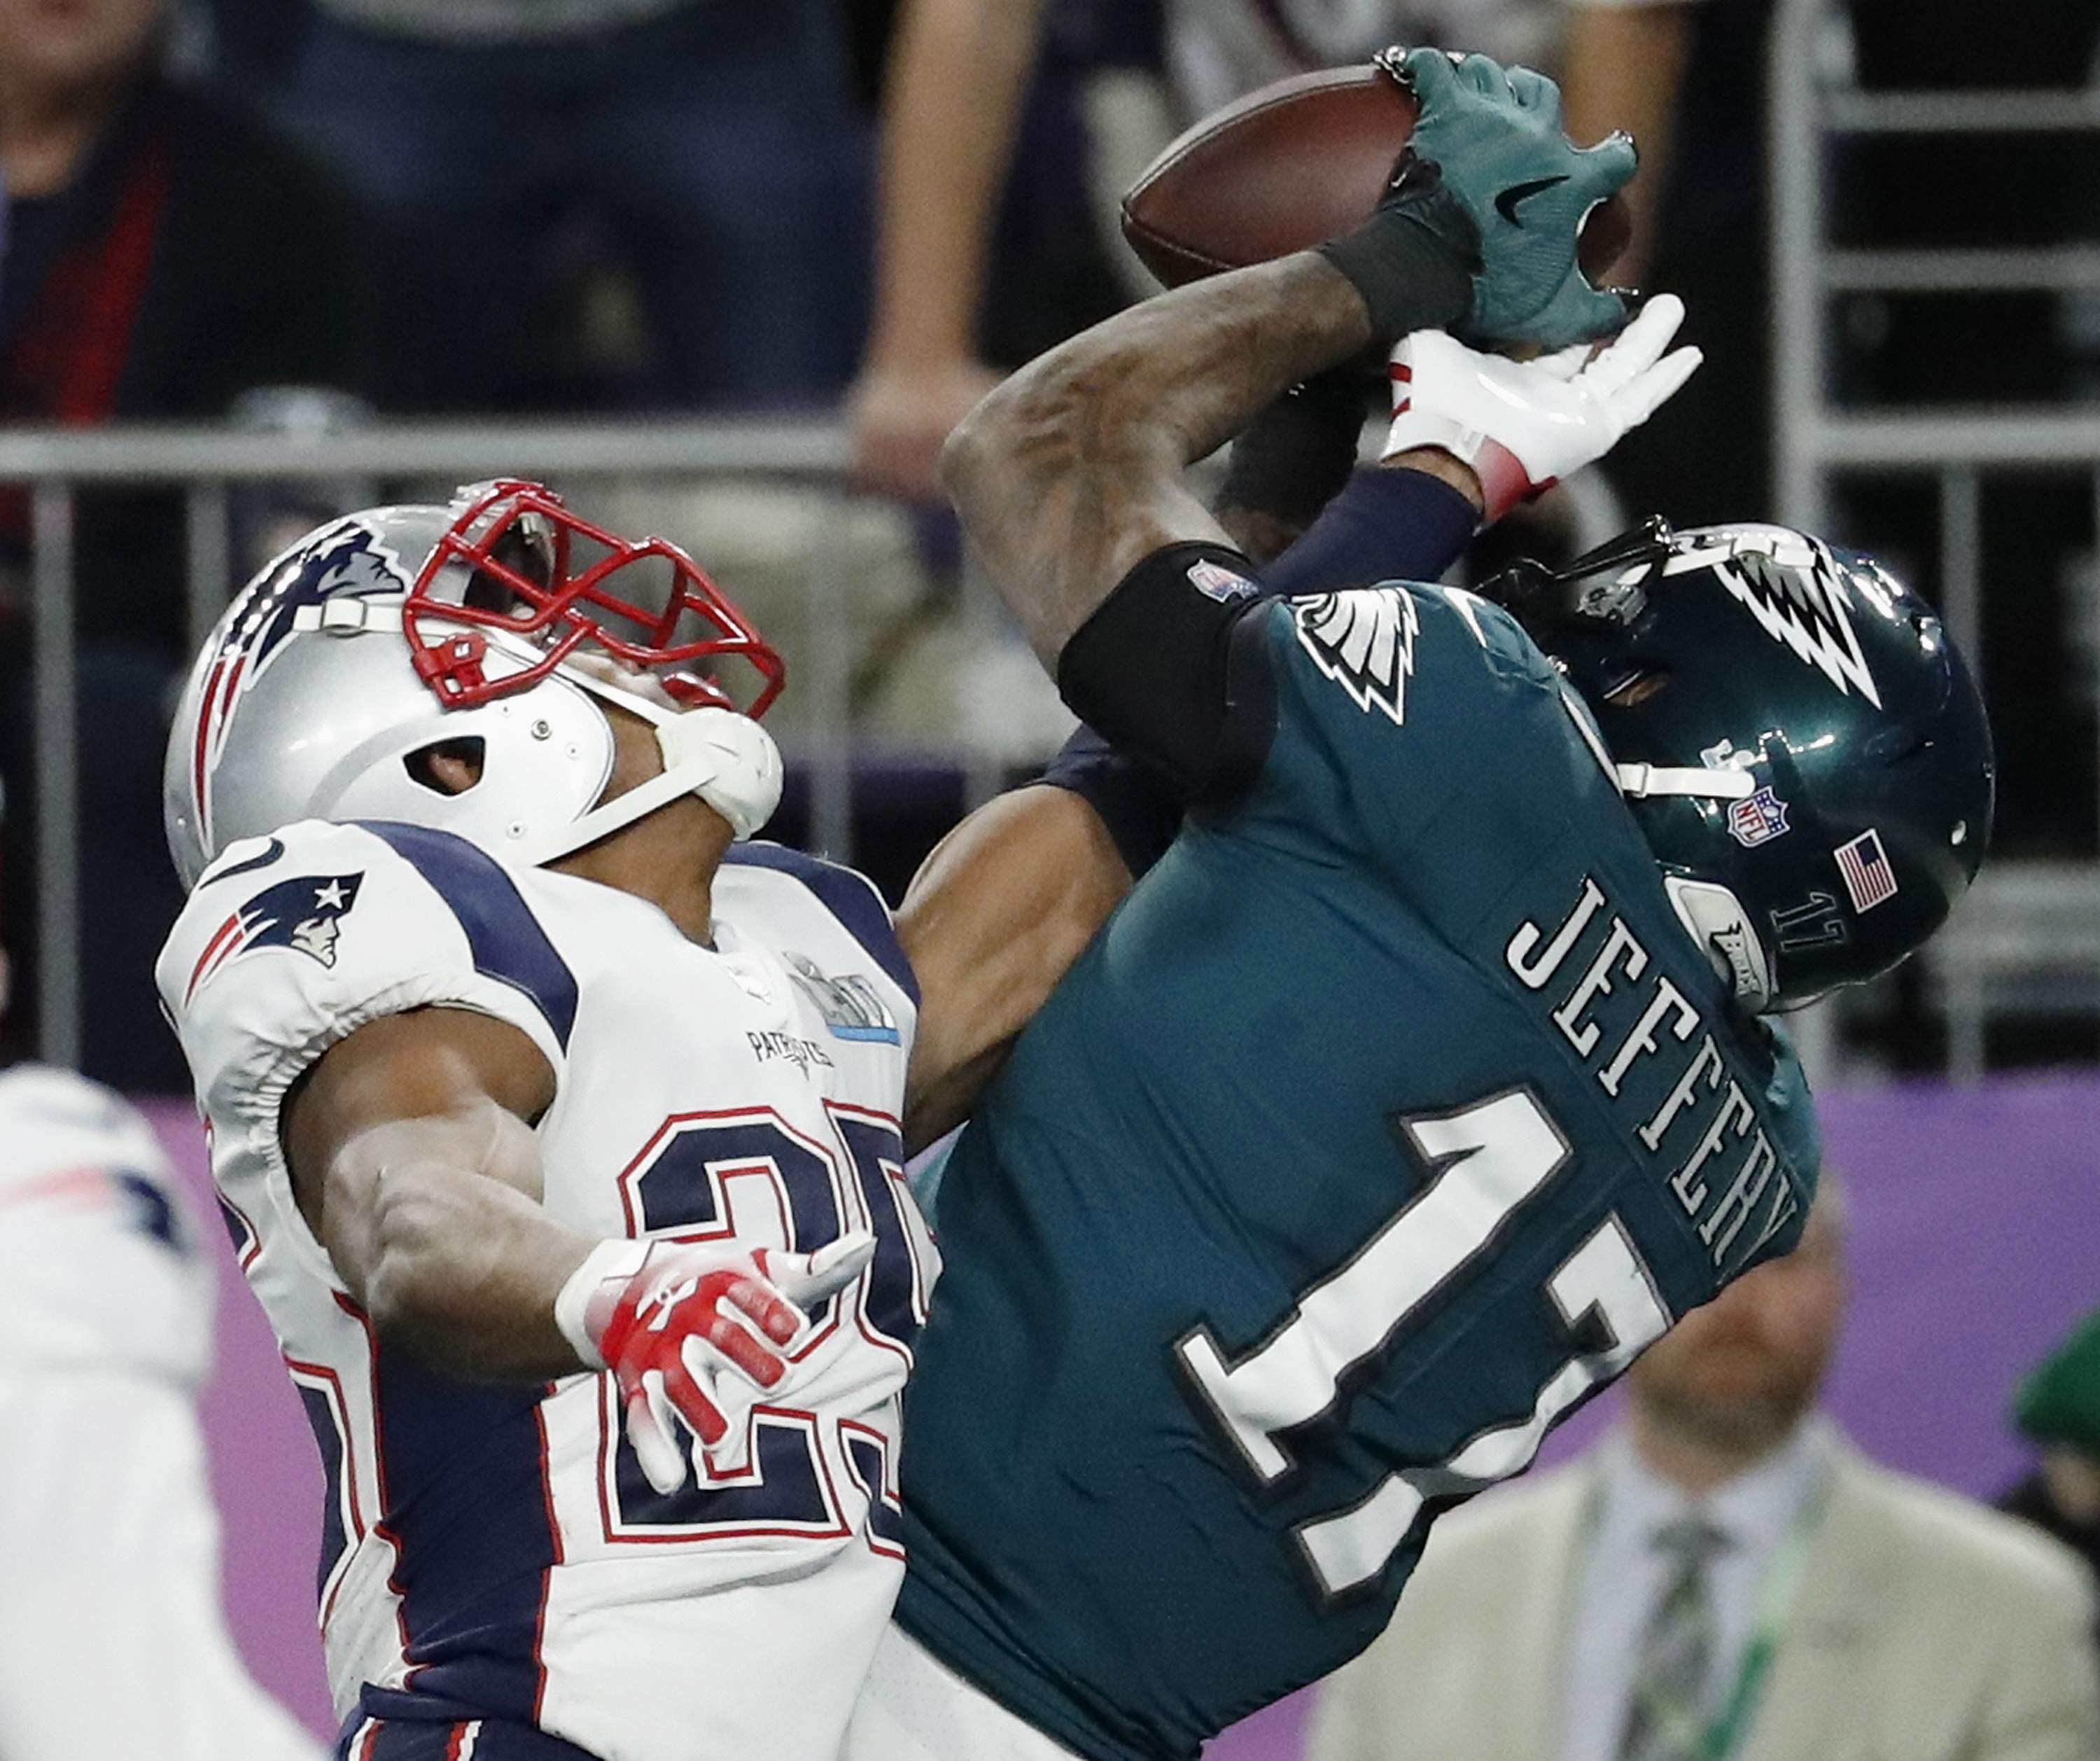 Philadelphia Eagles' Alshon Jeffery, right, catches a touchdown pass over New England Patriots' Eric Rowe during the first half of the NFL Super Bowl 52 football game Sunday, Feb. 4, 2018, in Minneapolis. (AP Photo/Matt York)